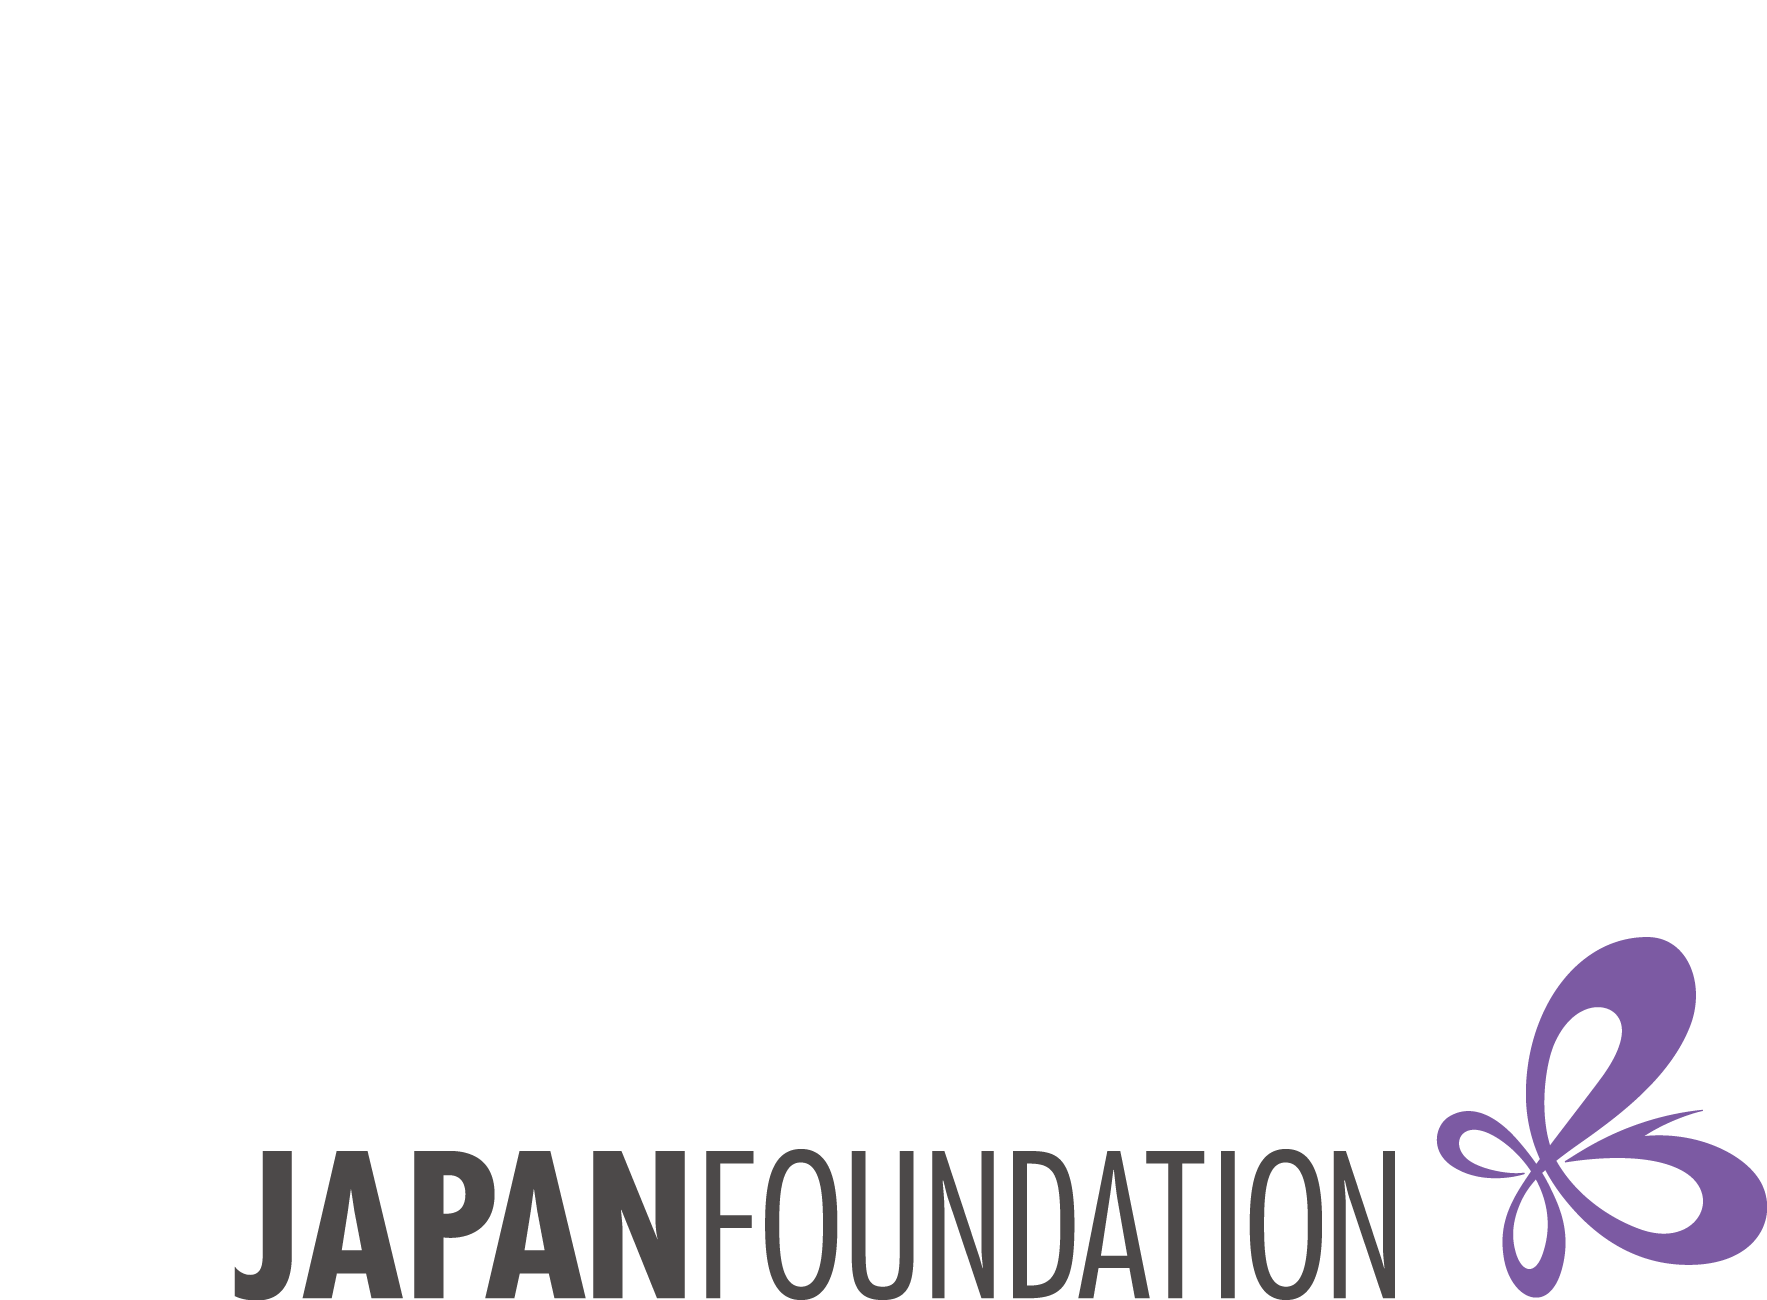 Japan Foundation Asia Center (JFAC )  aims to connect people and expand networks in Asia through promoting bilateral exchanges and cooperation in various fields ranging from Arts, Films/Moving Images, Music and Dance, Performing Arts, Sports, Intellectual and People-to People Exchanges.